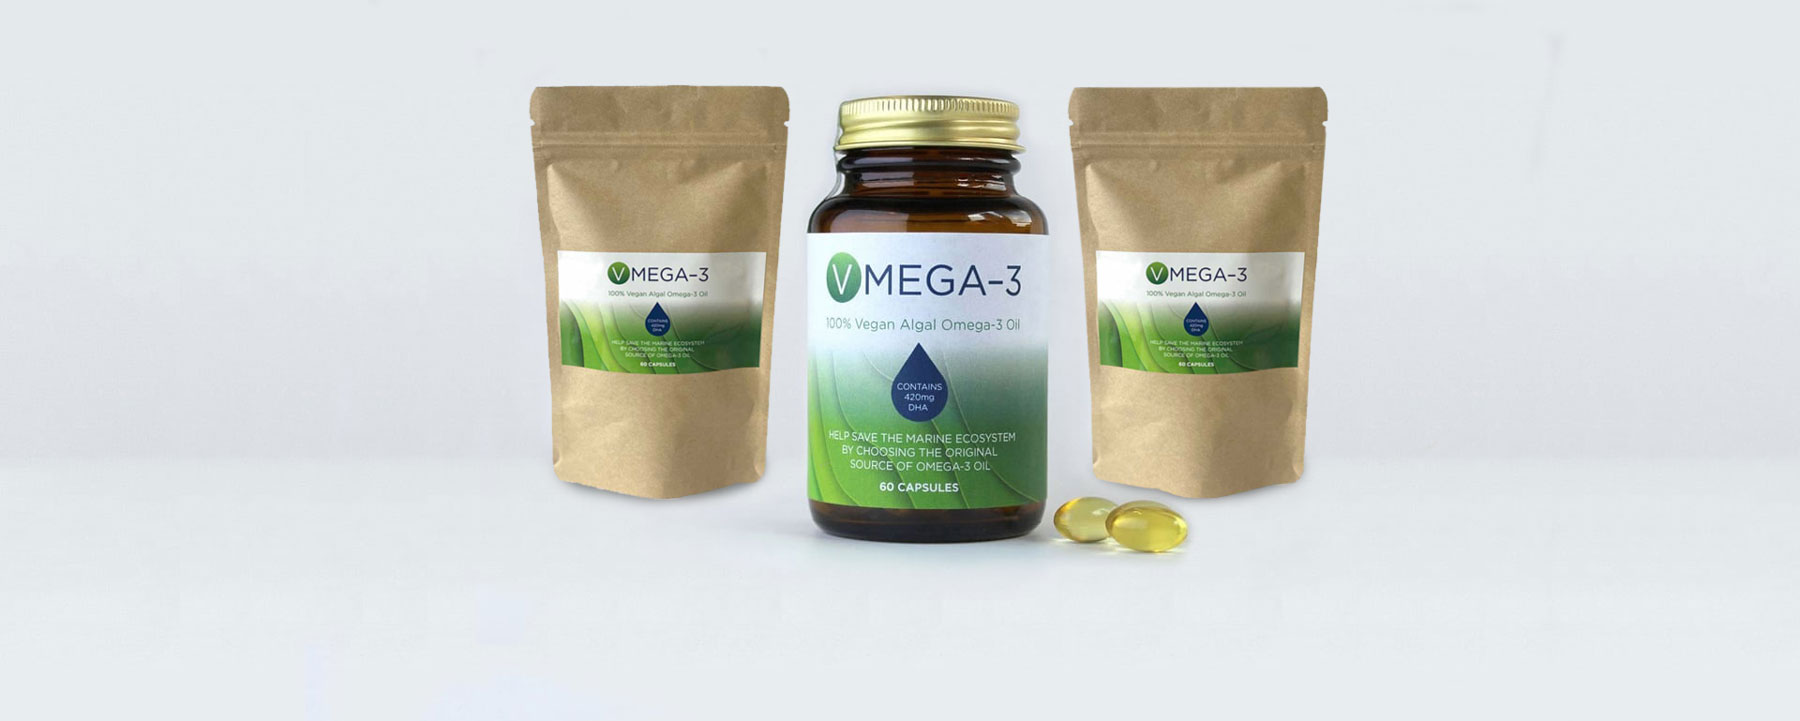 Vegan Omega 3 Algal Oil Capsules The Purest Form Of Omega 3 Hero Shot